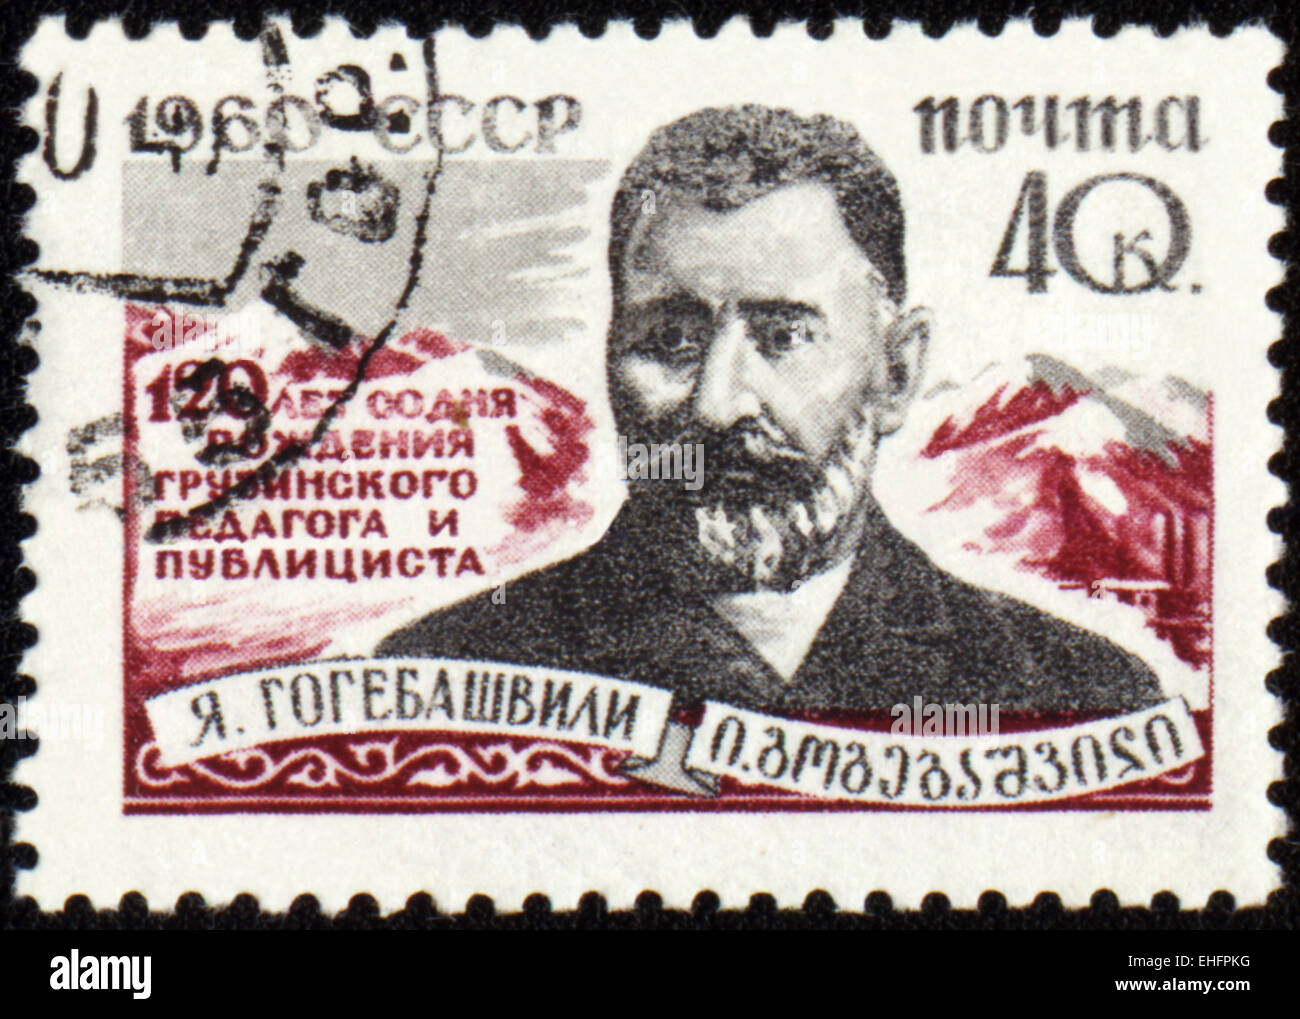 USSR - CIRCA 1960: post stamp printed in USSR and shows portrait of Georgian pedagogue and publicist Gogebashvili - Stock Image